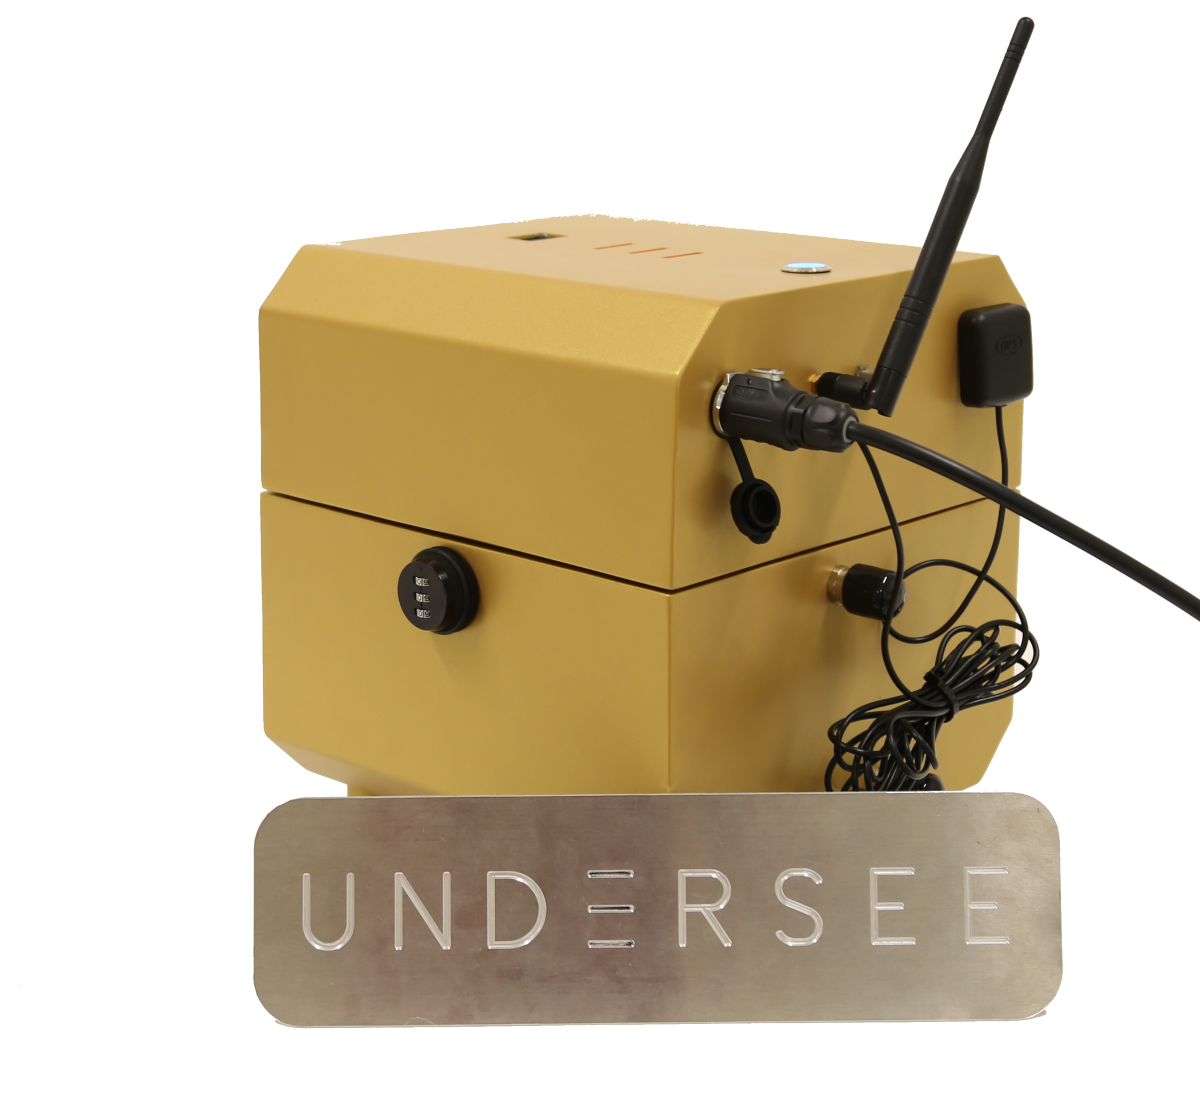 UNDERSEE_water is a small and easy-to-install device, equipped with state-of-the-art sensors technology, used to collect data from water bodies at real-time.